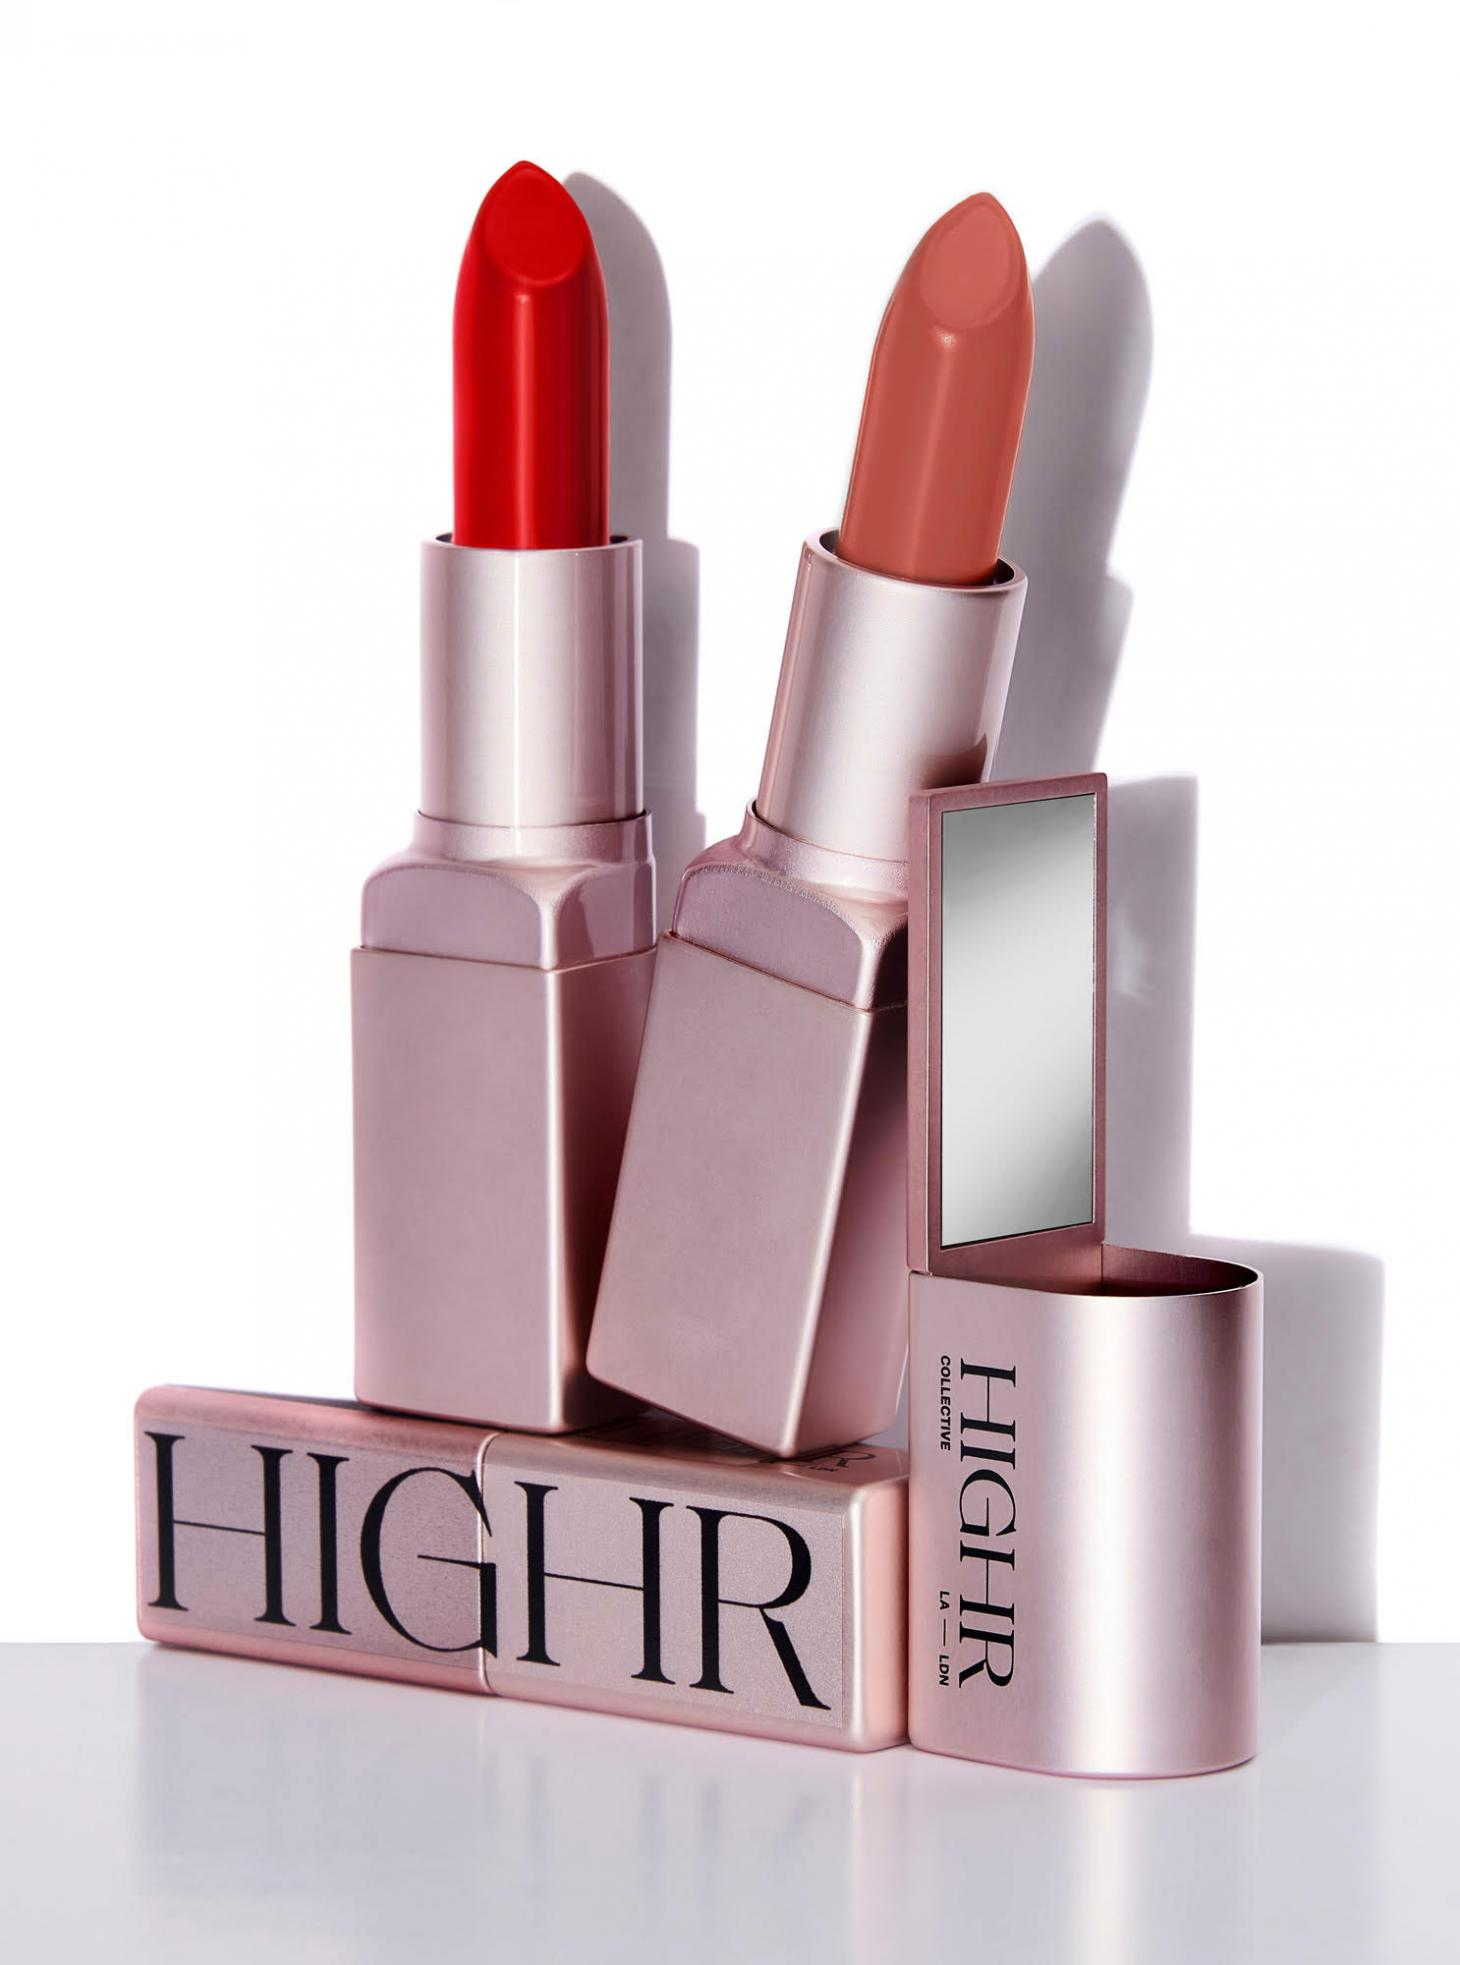 lipsticks by Highr in pink metal cases against white